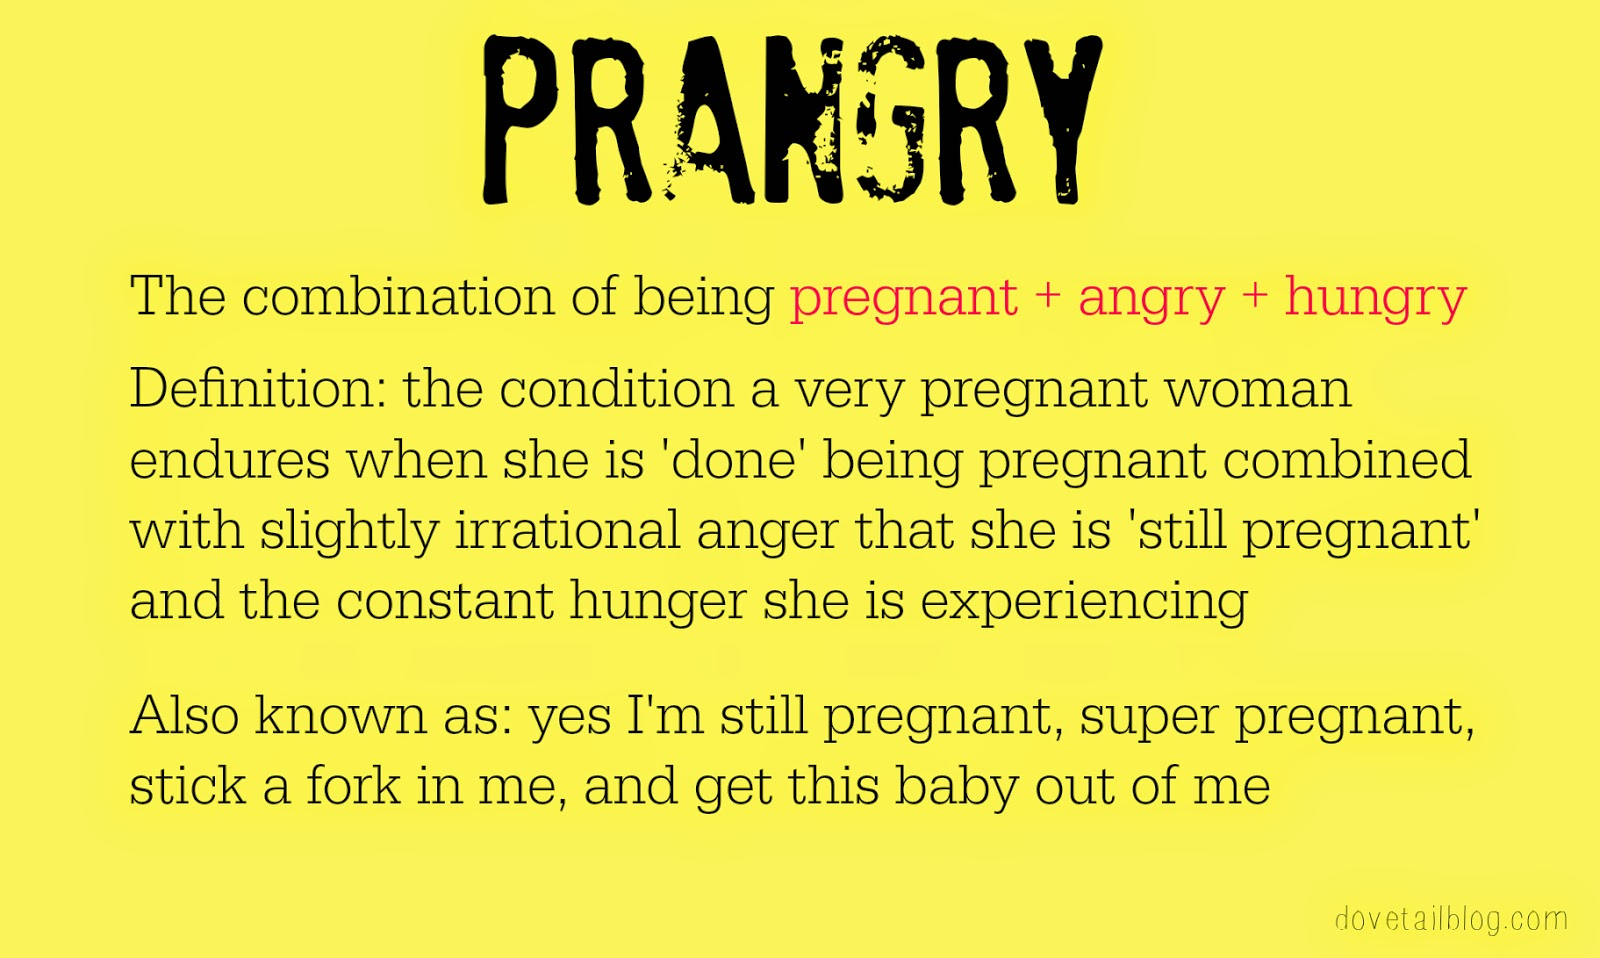 Prangry = pregnant + angry + hungry